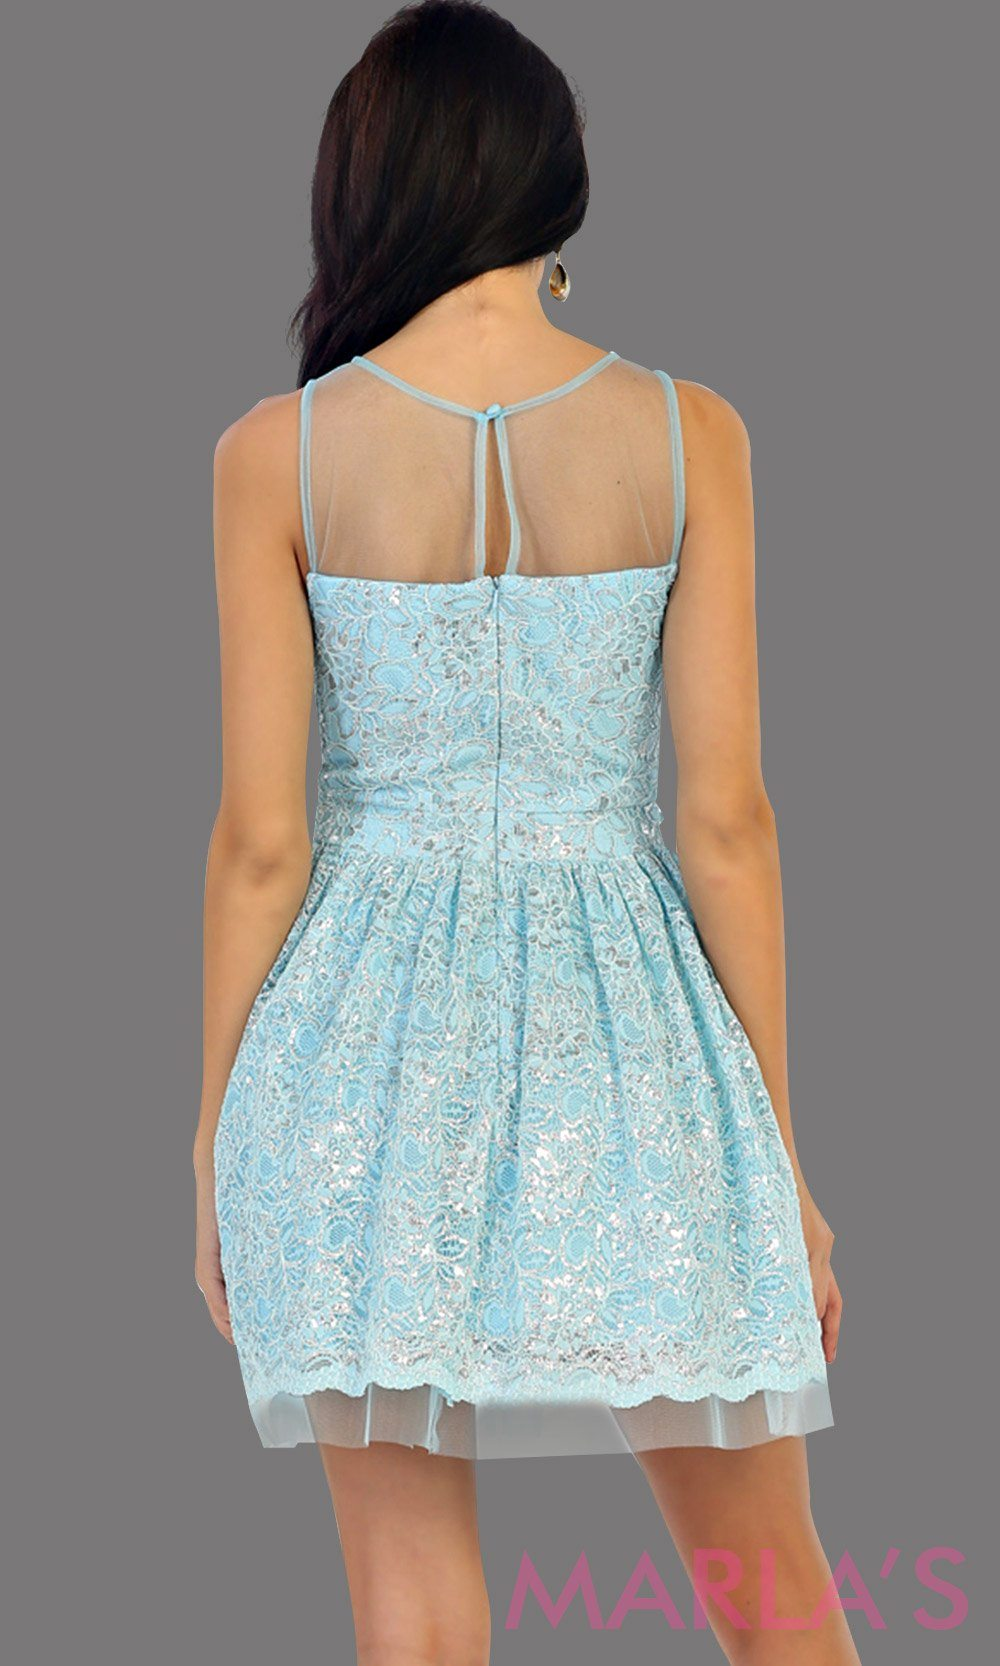 1456-Back of short high neck aqua grade 8 graduation lace dress. Perfect blue short prom dress, cofirmation, grad dress, or wedding guest dress, damas. Available in plus sizes